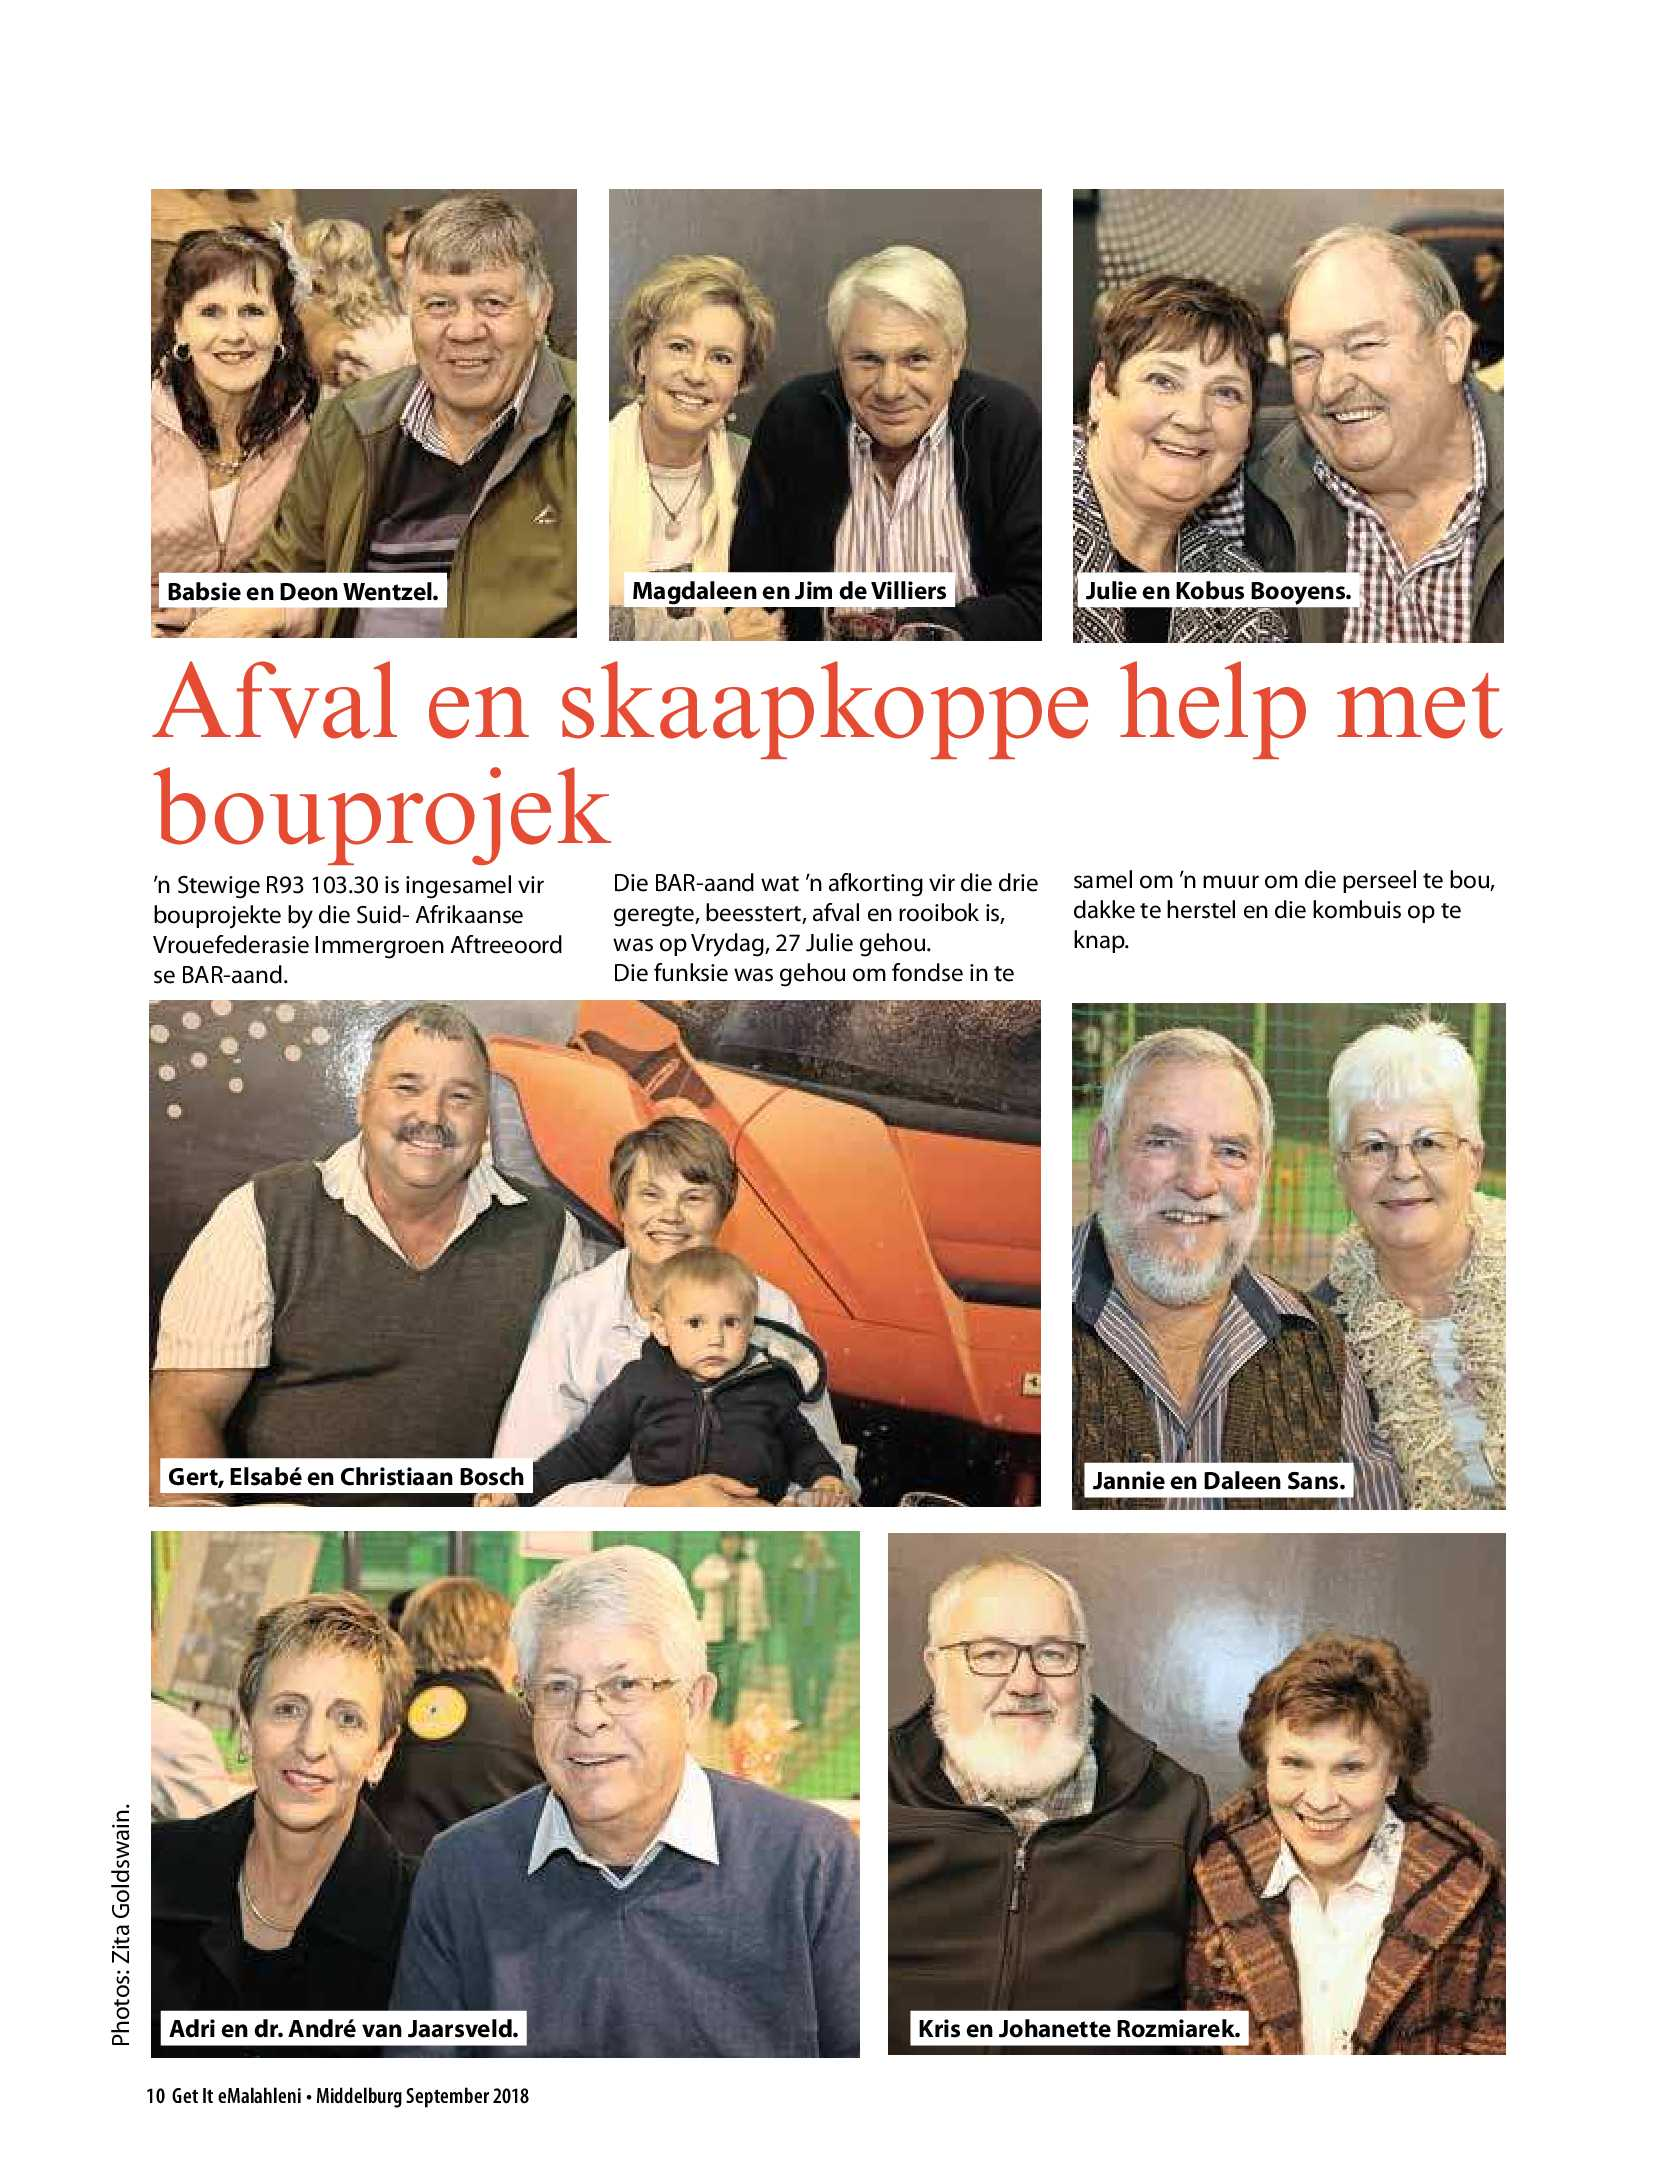 get-middelburg-septermber-2018-epapers-page-12